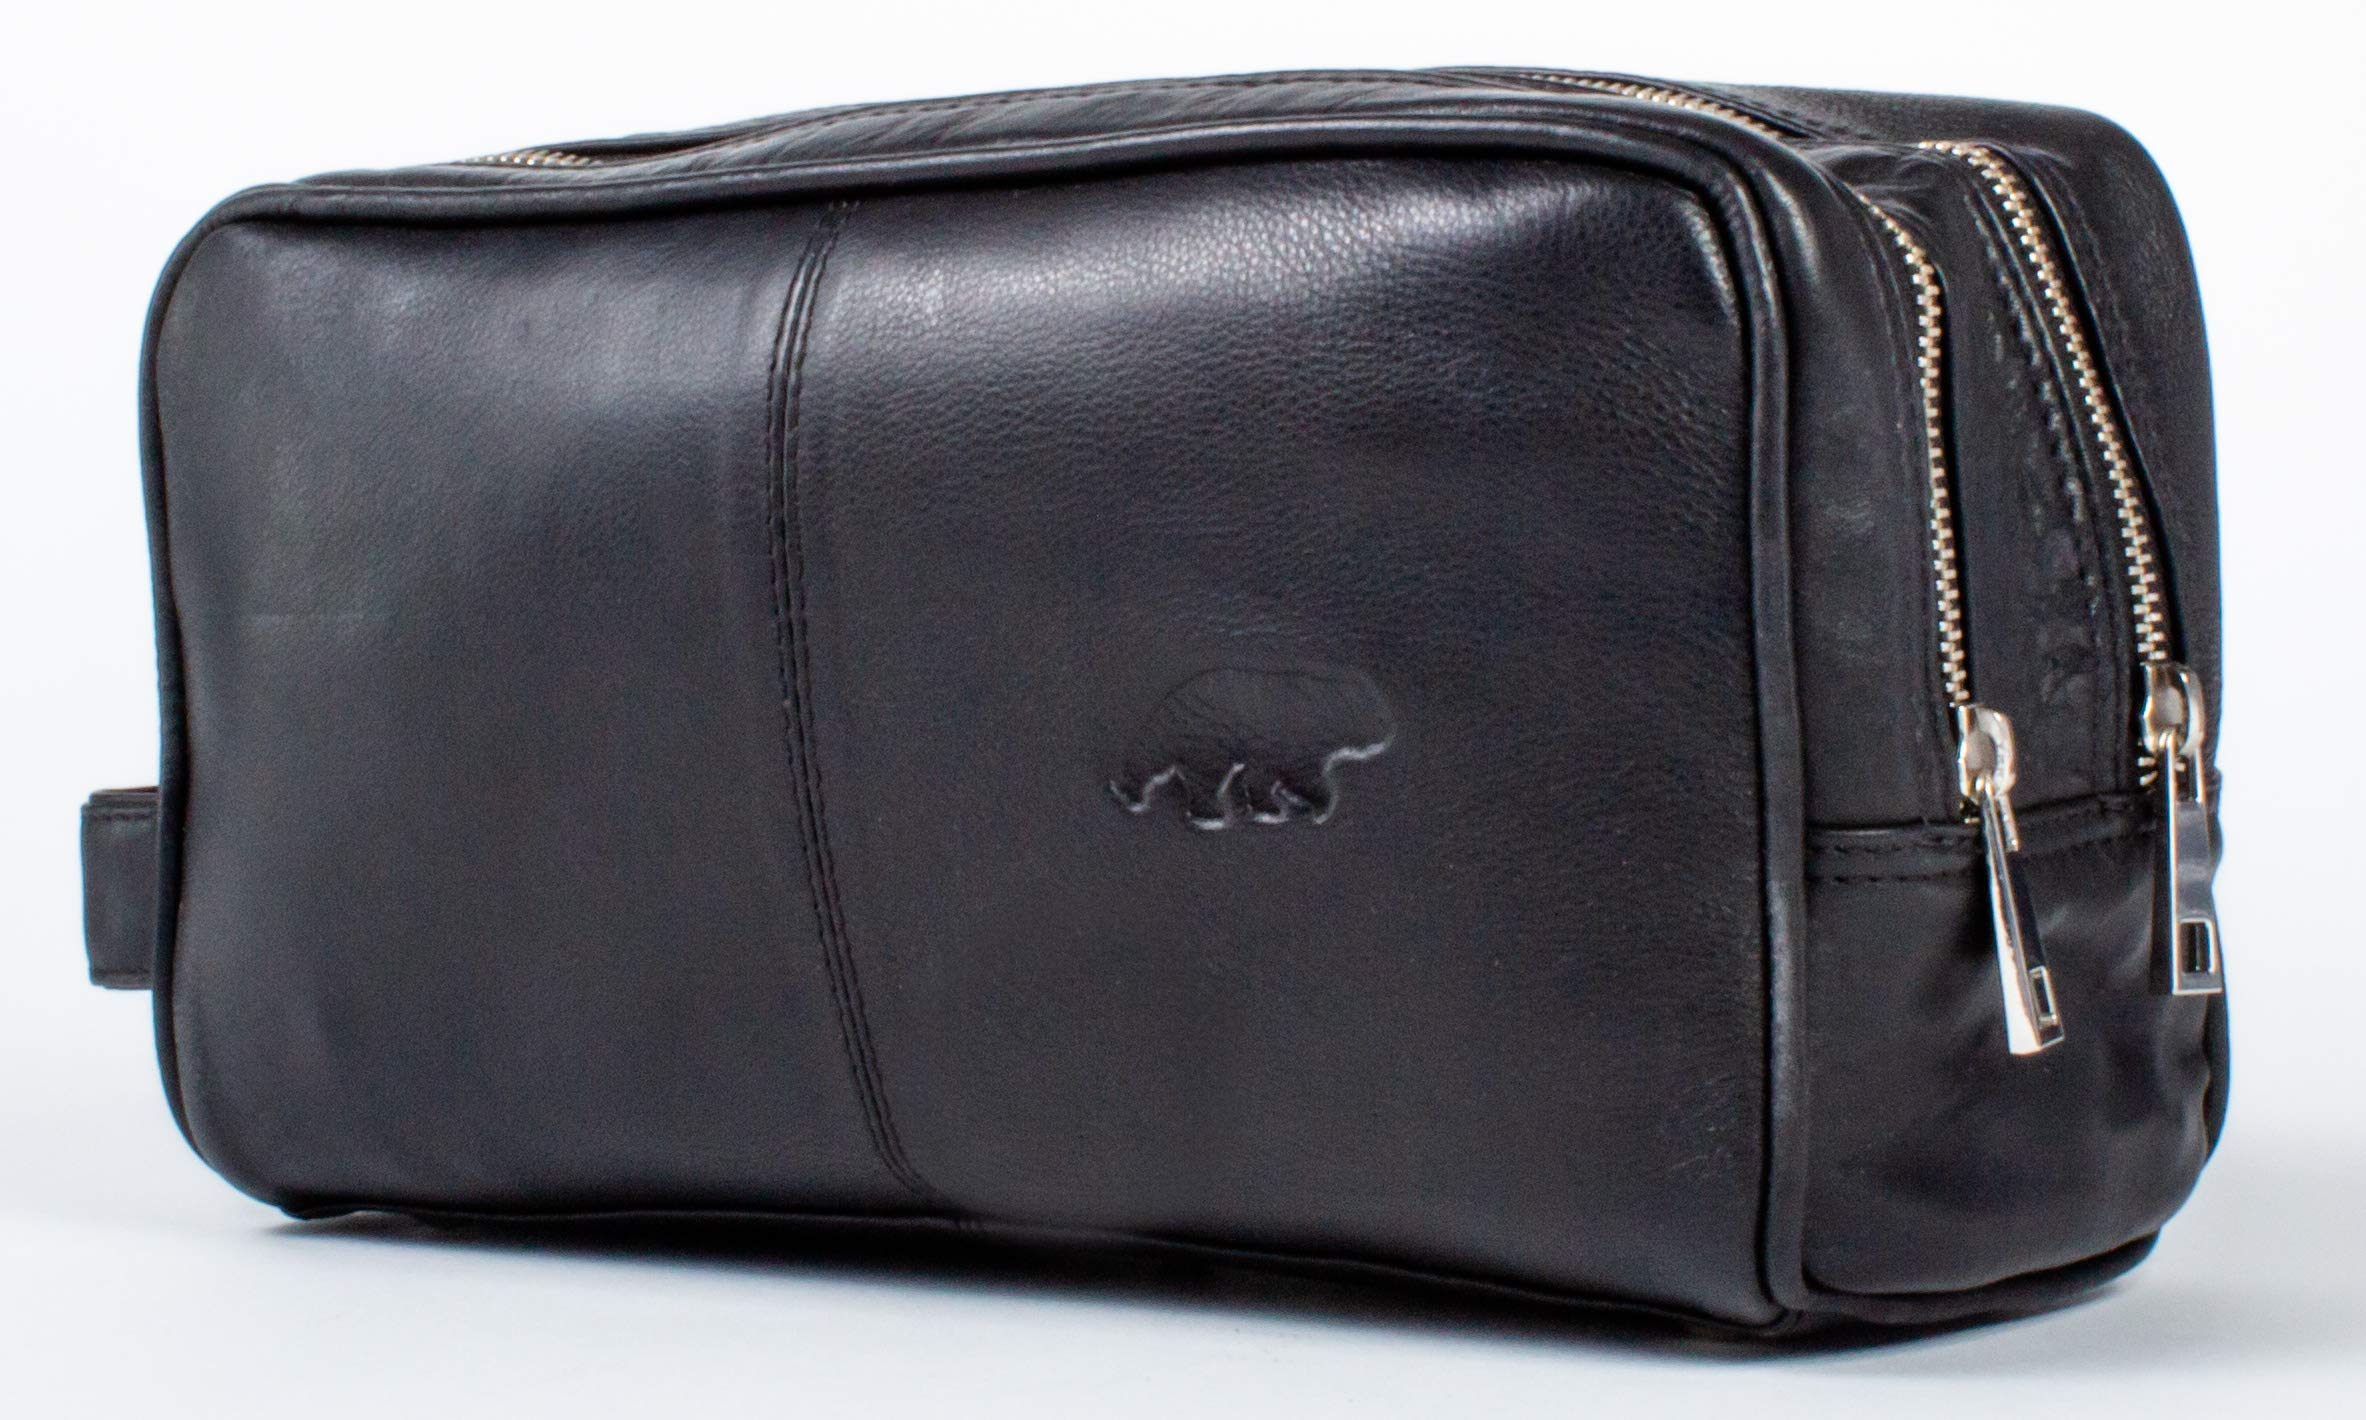 Leather Travel Toiletry Dopp Bag - Perfect Kodiak Case For a Makeup and Shave Kit Organizer by Kodiak Leather